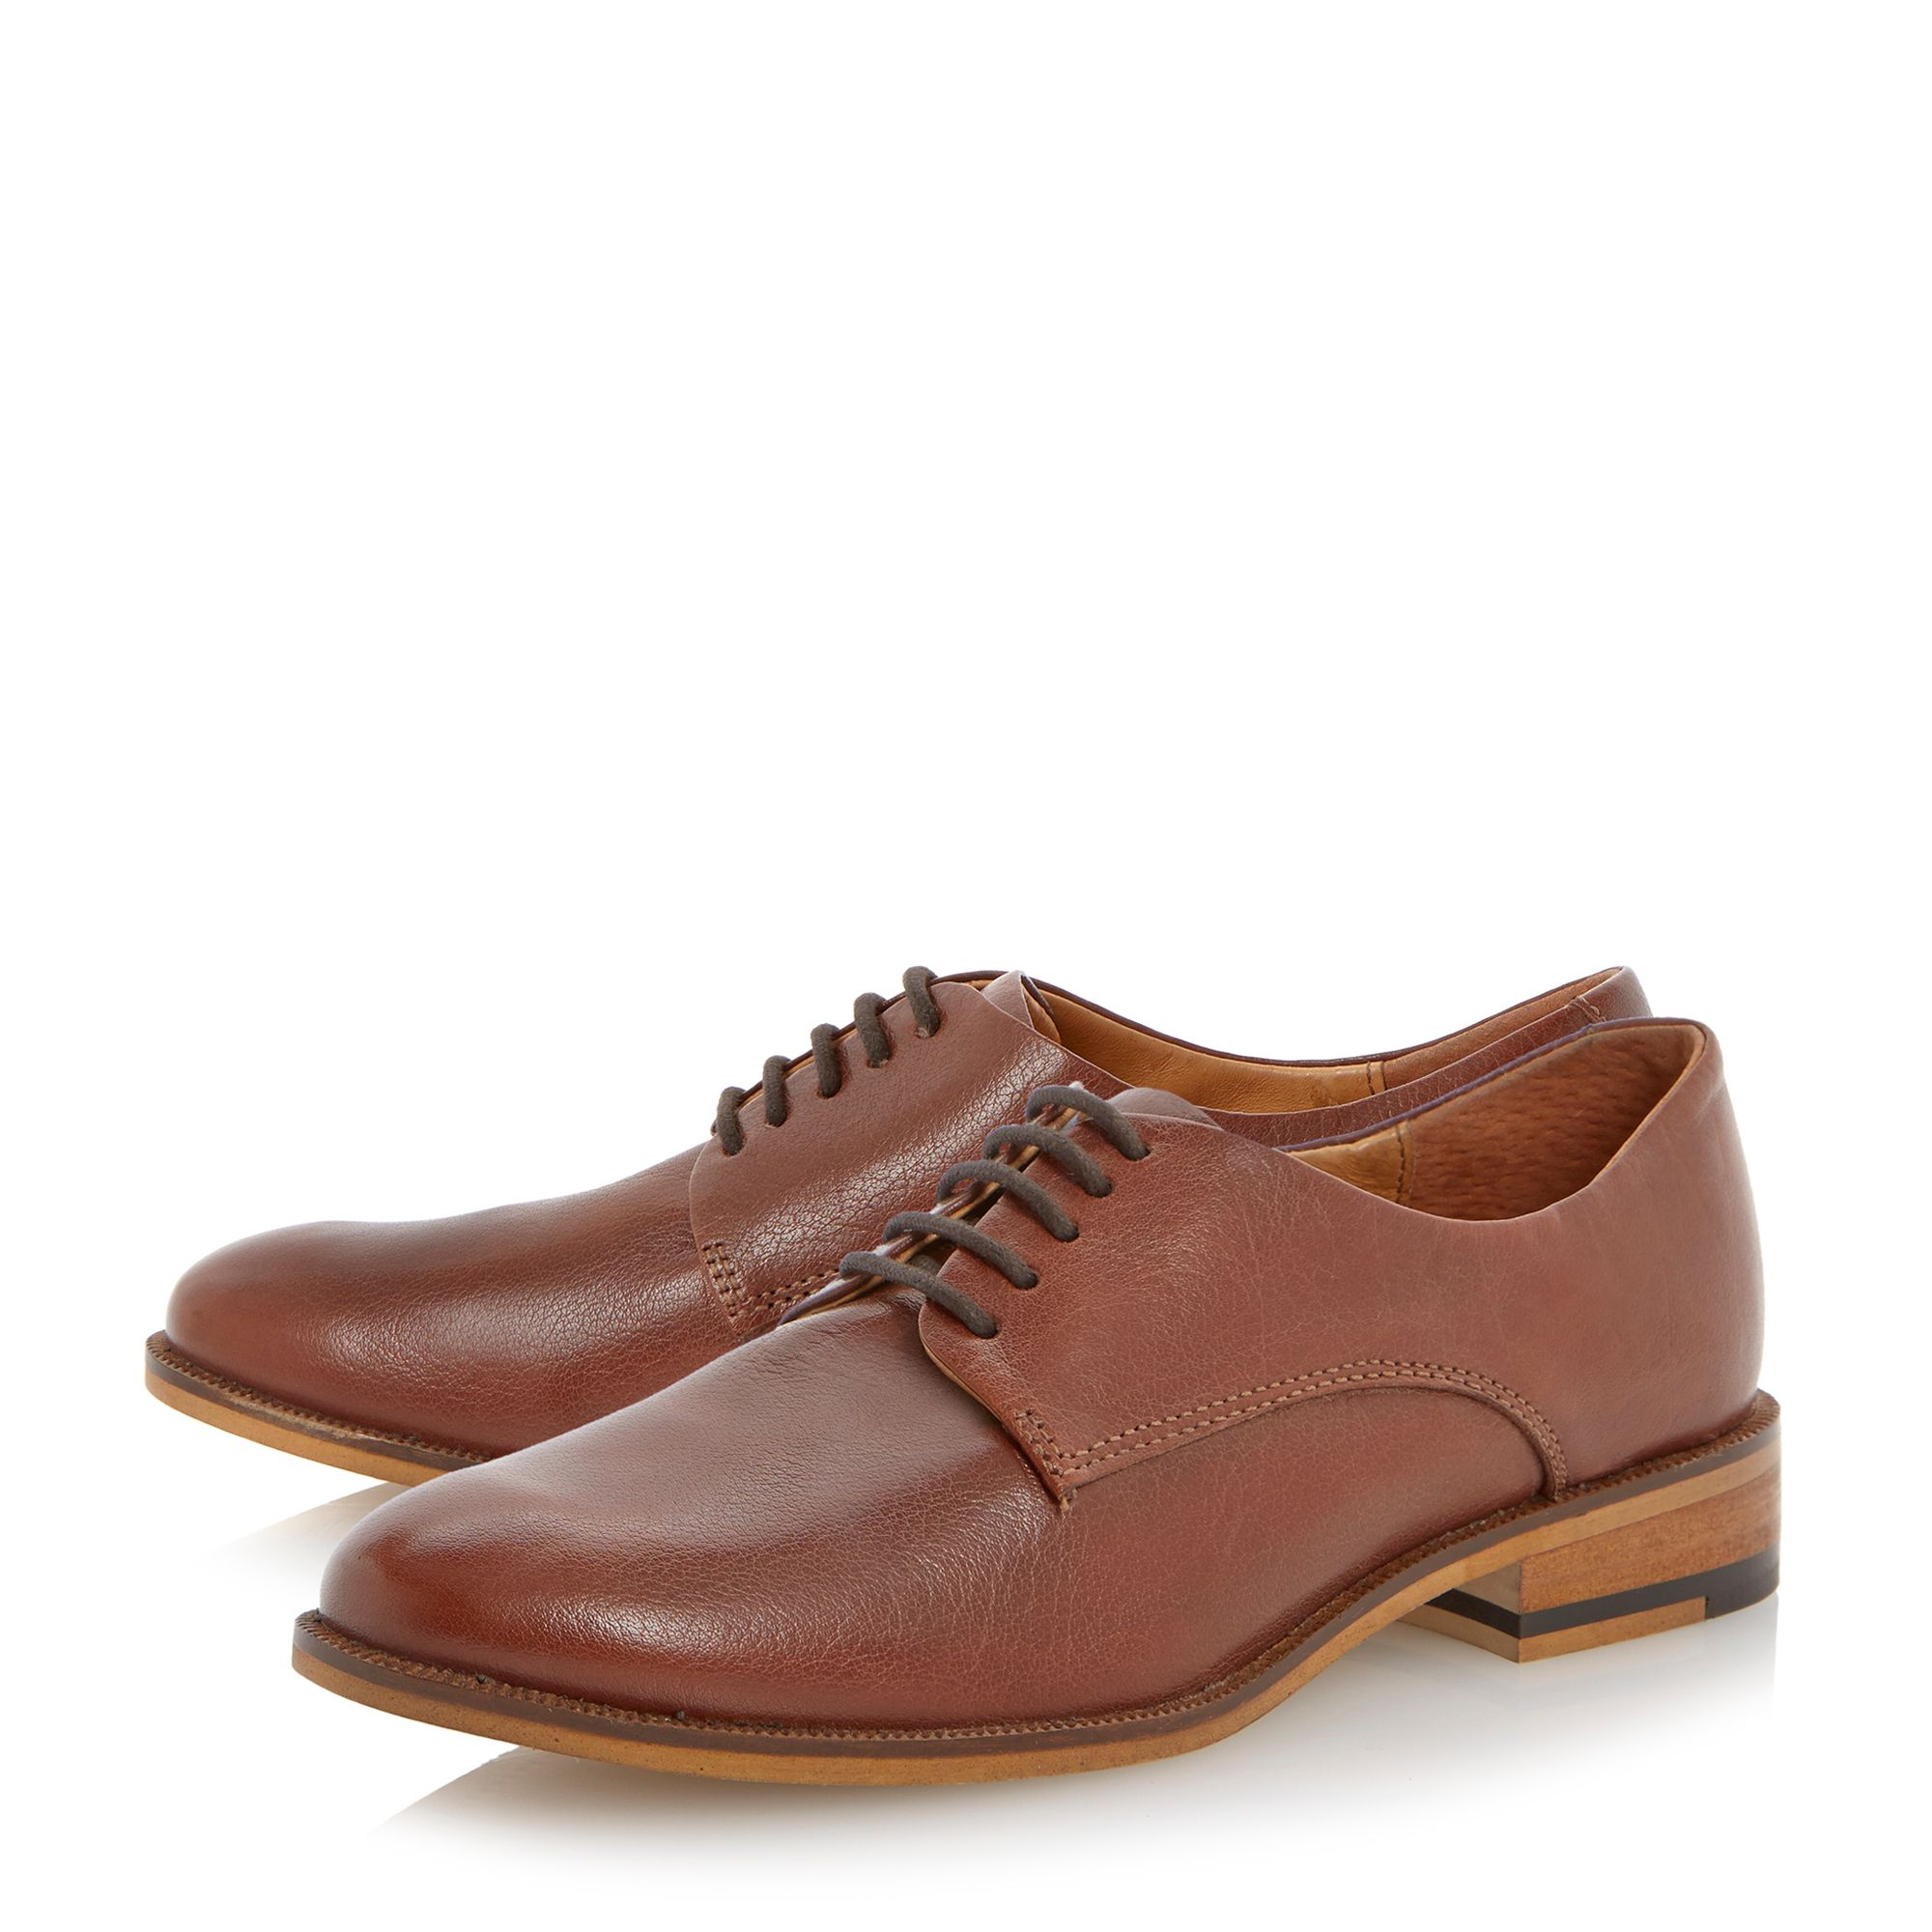 Latter leather lace up shoes